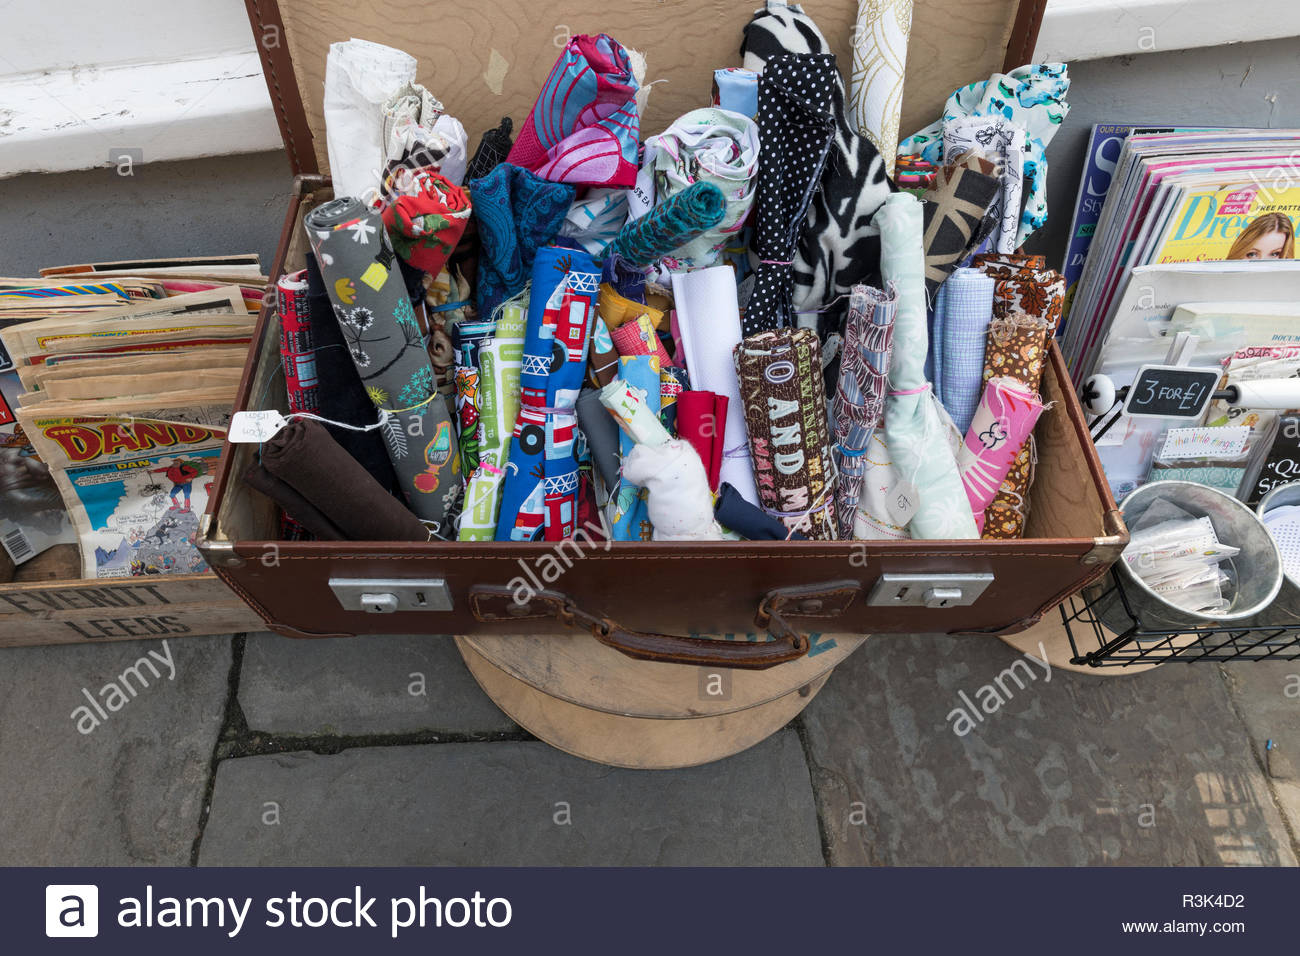 Secondhand items outside shop, Frome, Somerset, England UK. - Stock Image